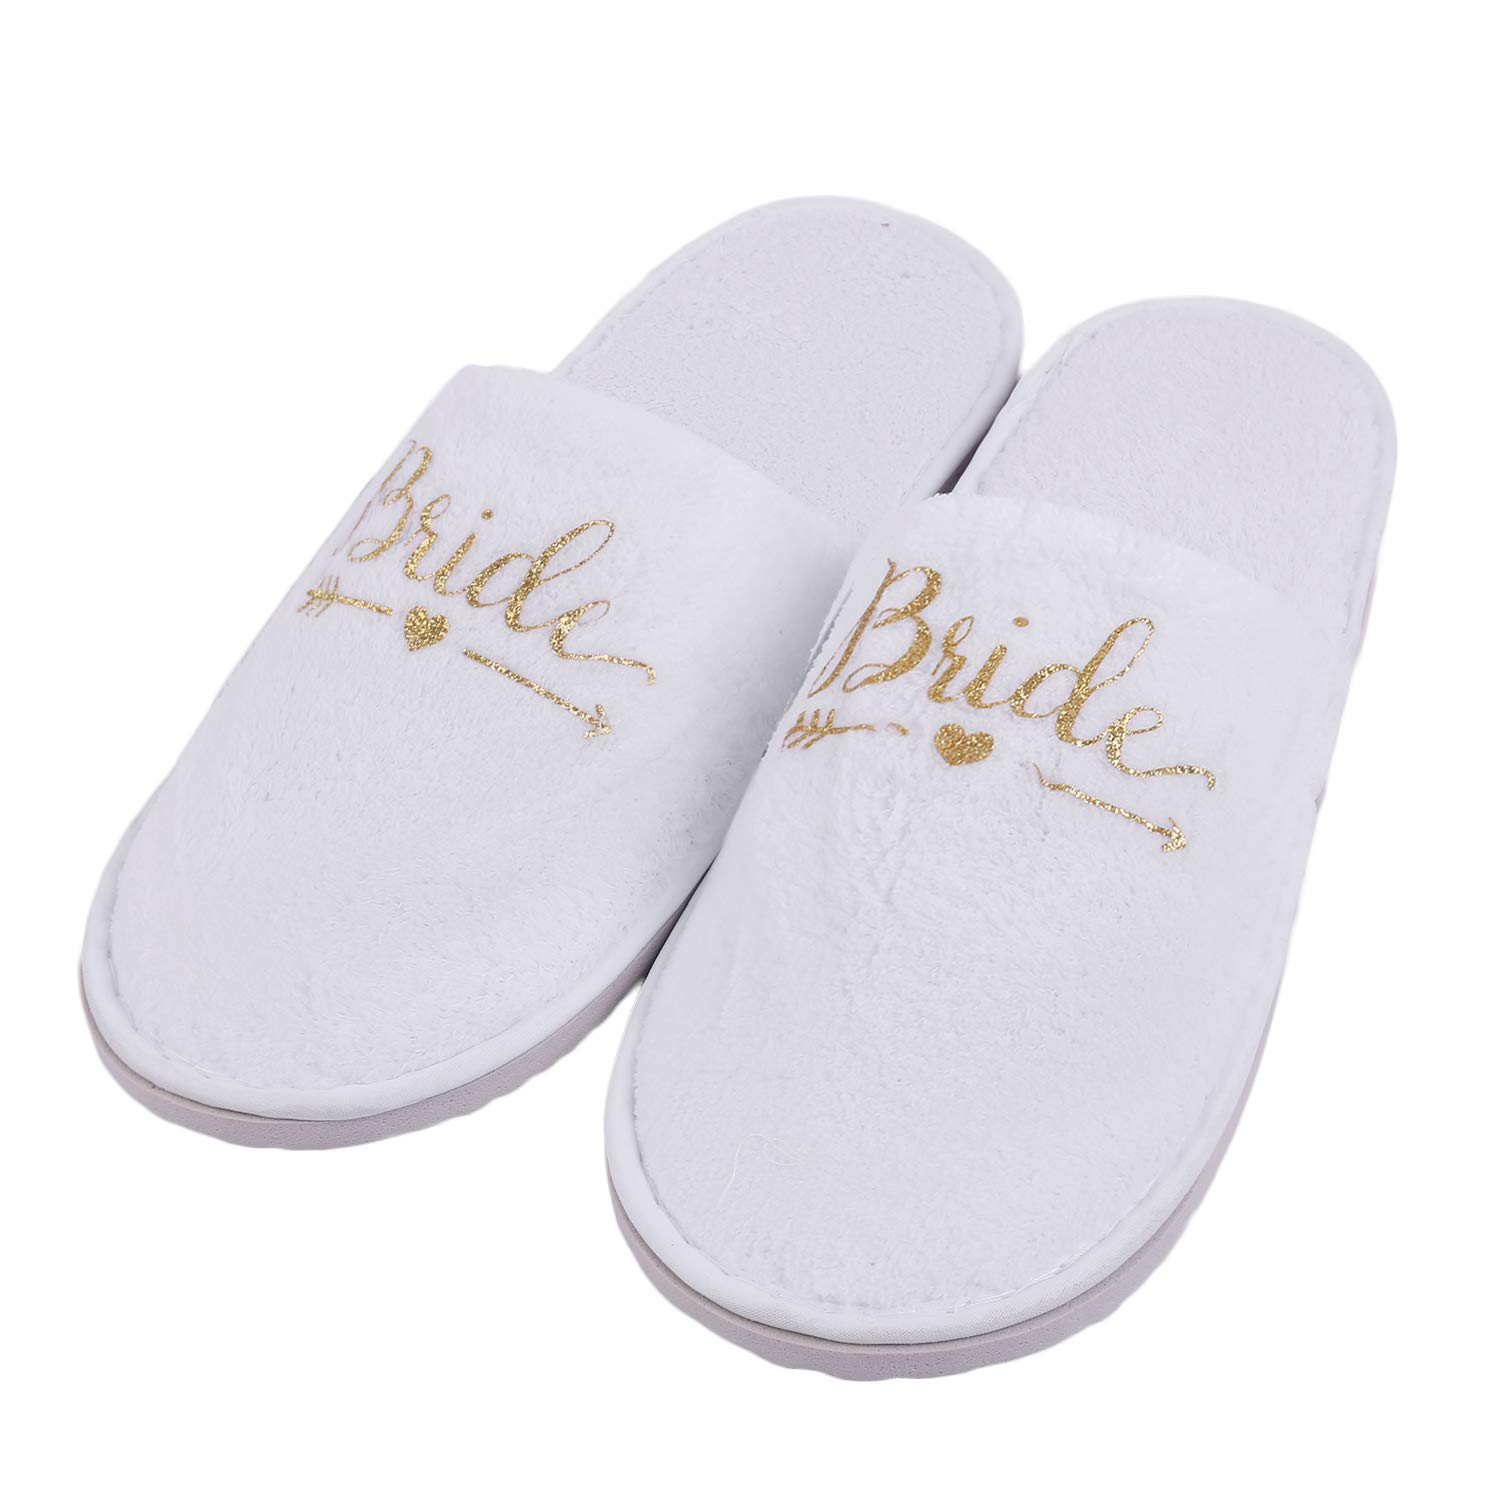 Hawiton Bride & Bridesmaind Wedding Slipper Party Slippers for Spa Gold Glitter by Hawiton